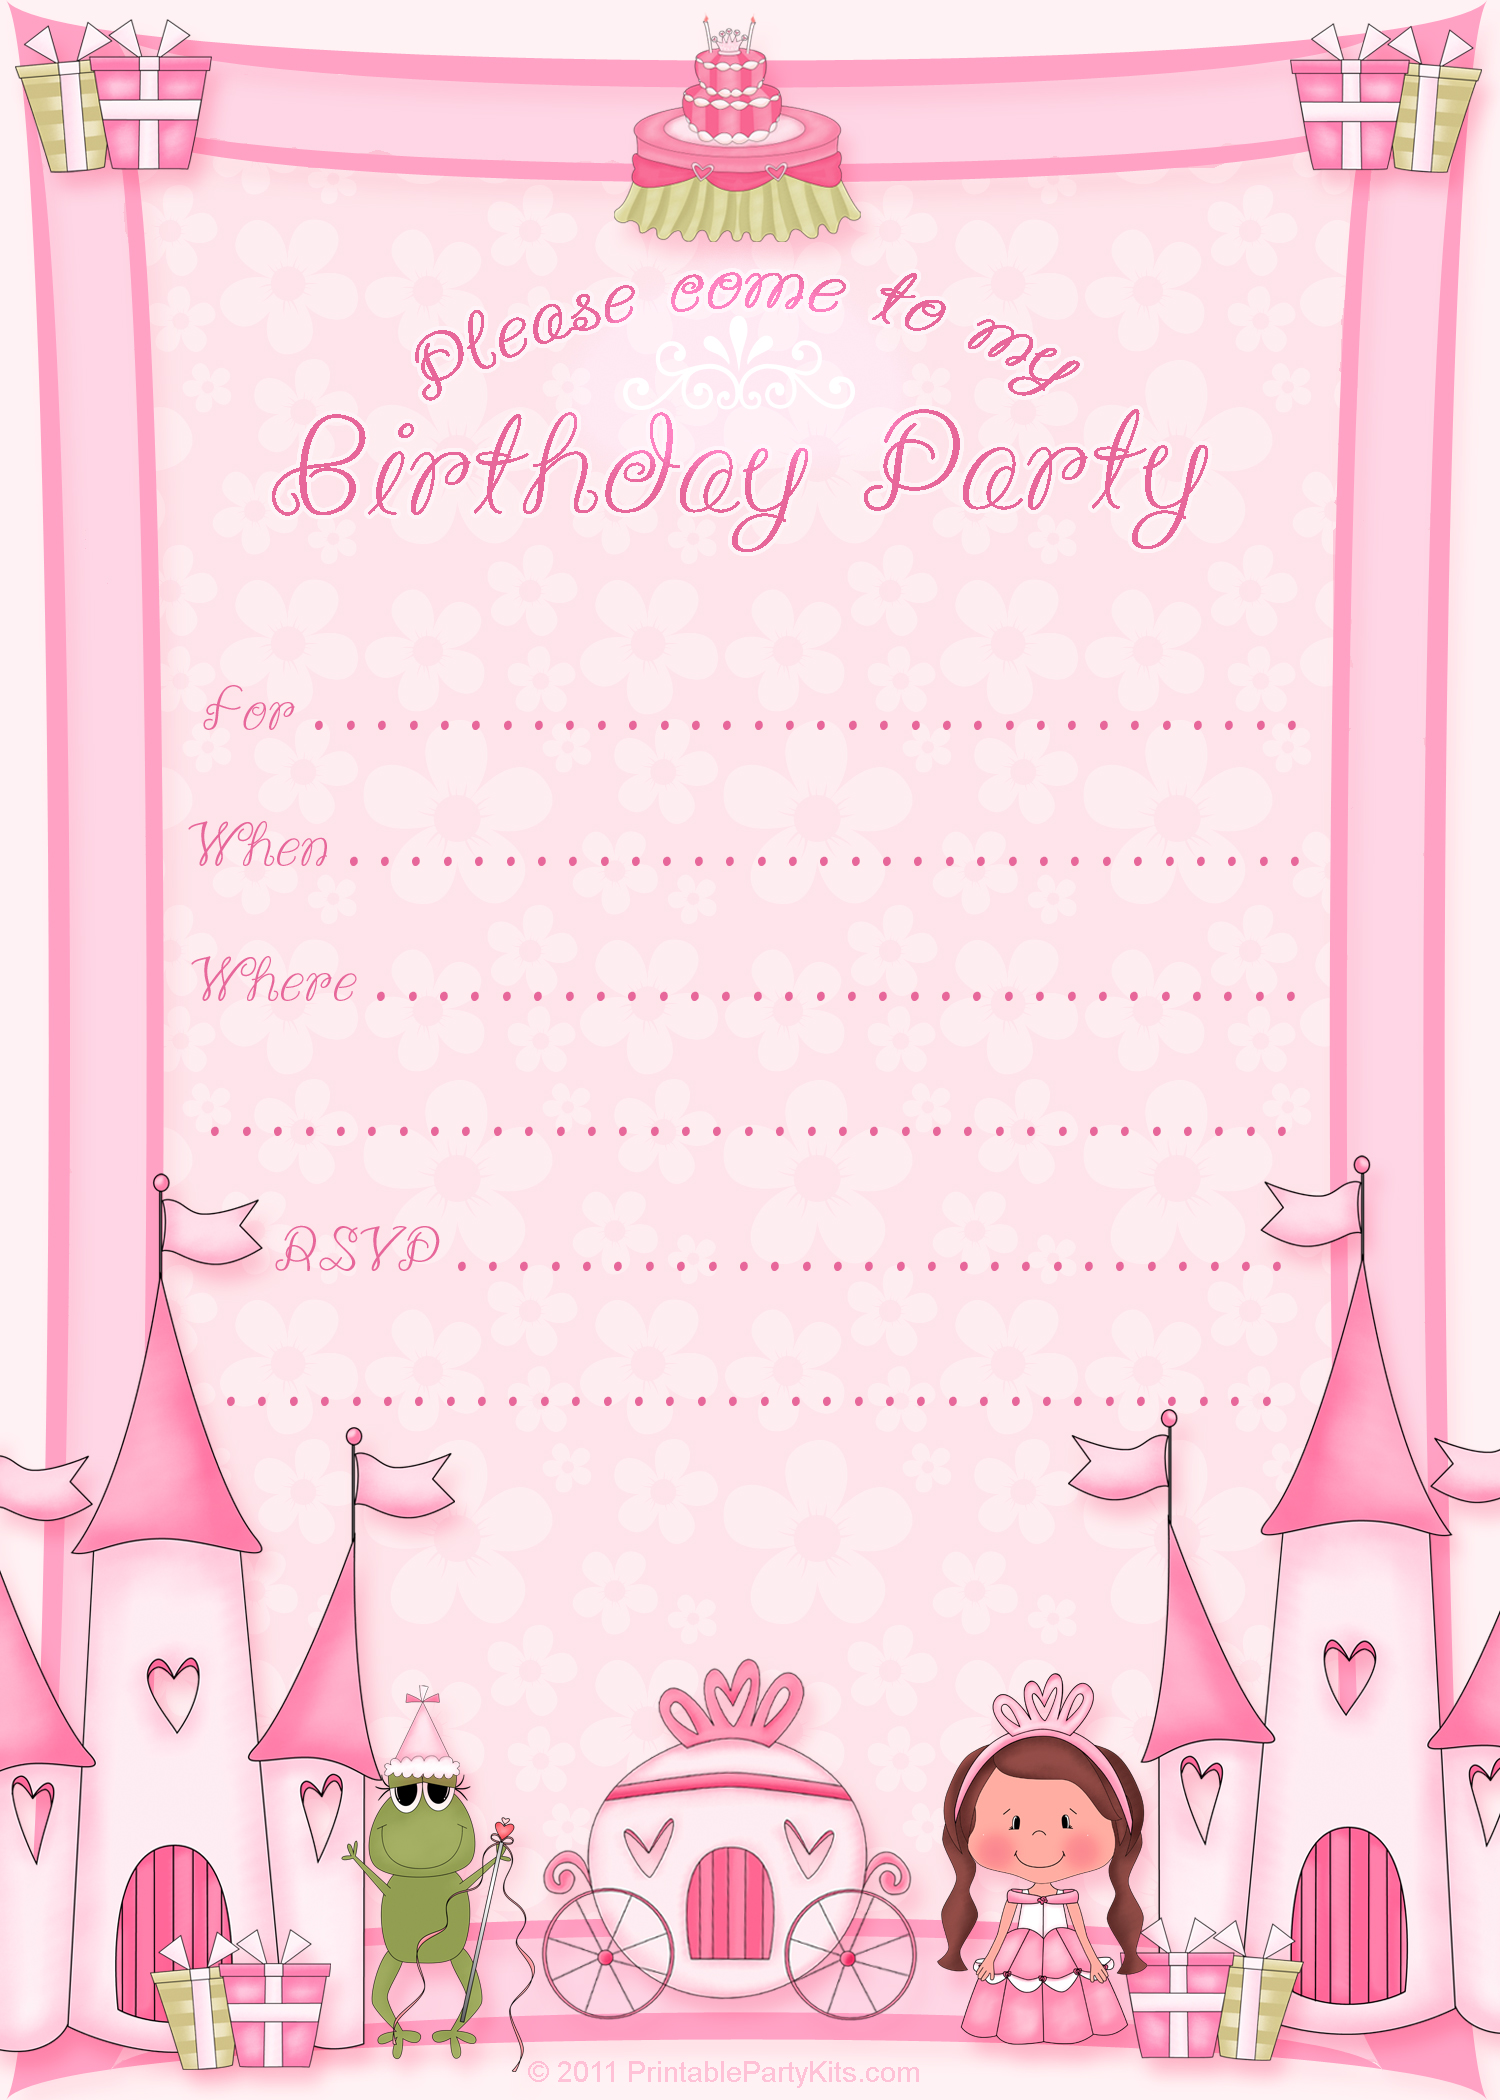 birthday invitation template photoshop free ; free-birthday-invitation-templates-with-photo-birthday-party-invitation-images-free-for-a-lovely-birthday-invitation-design-with-lovely-layout-14